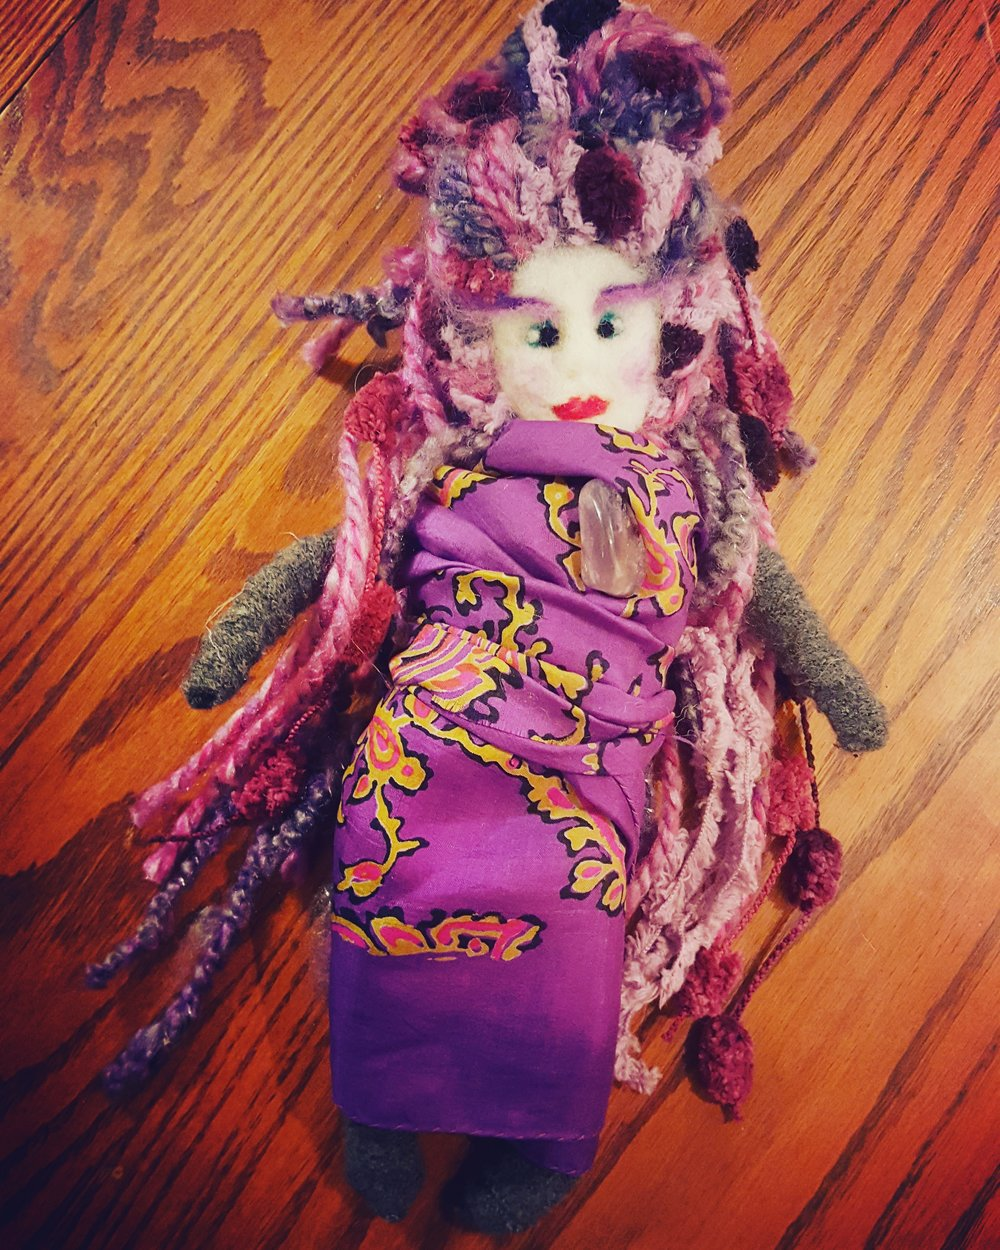 For ENN. - This dollie was made with love for ENN.The color purple combines the stability of blue with the fiery energy of red. Purple is the color of peace, wisdom, magic and independence. The amethyst stone on her heart encourages the healing process.May this doll bring love and light.